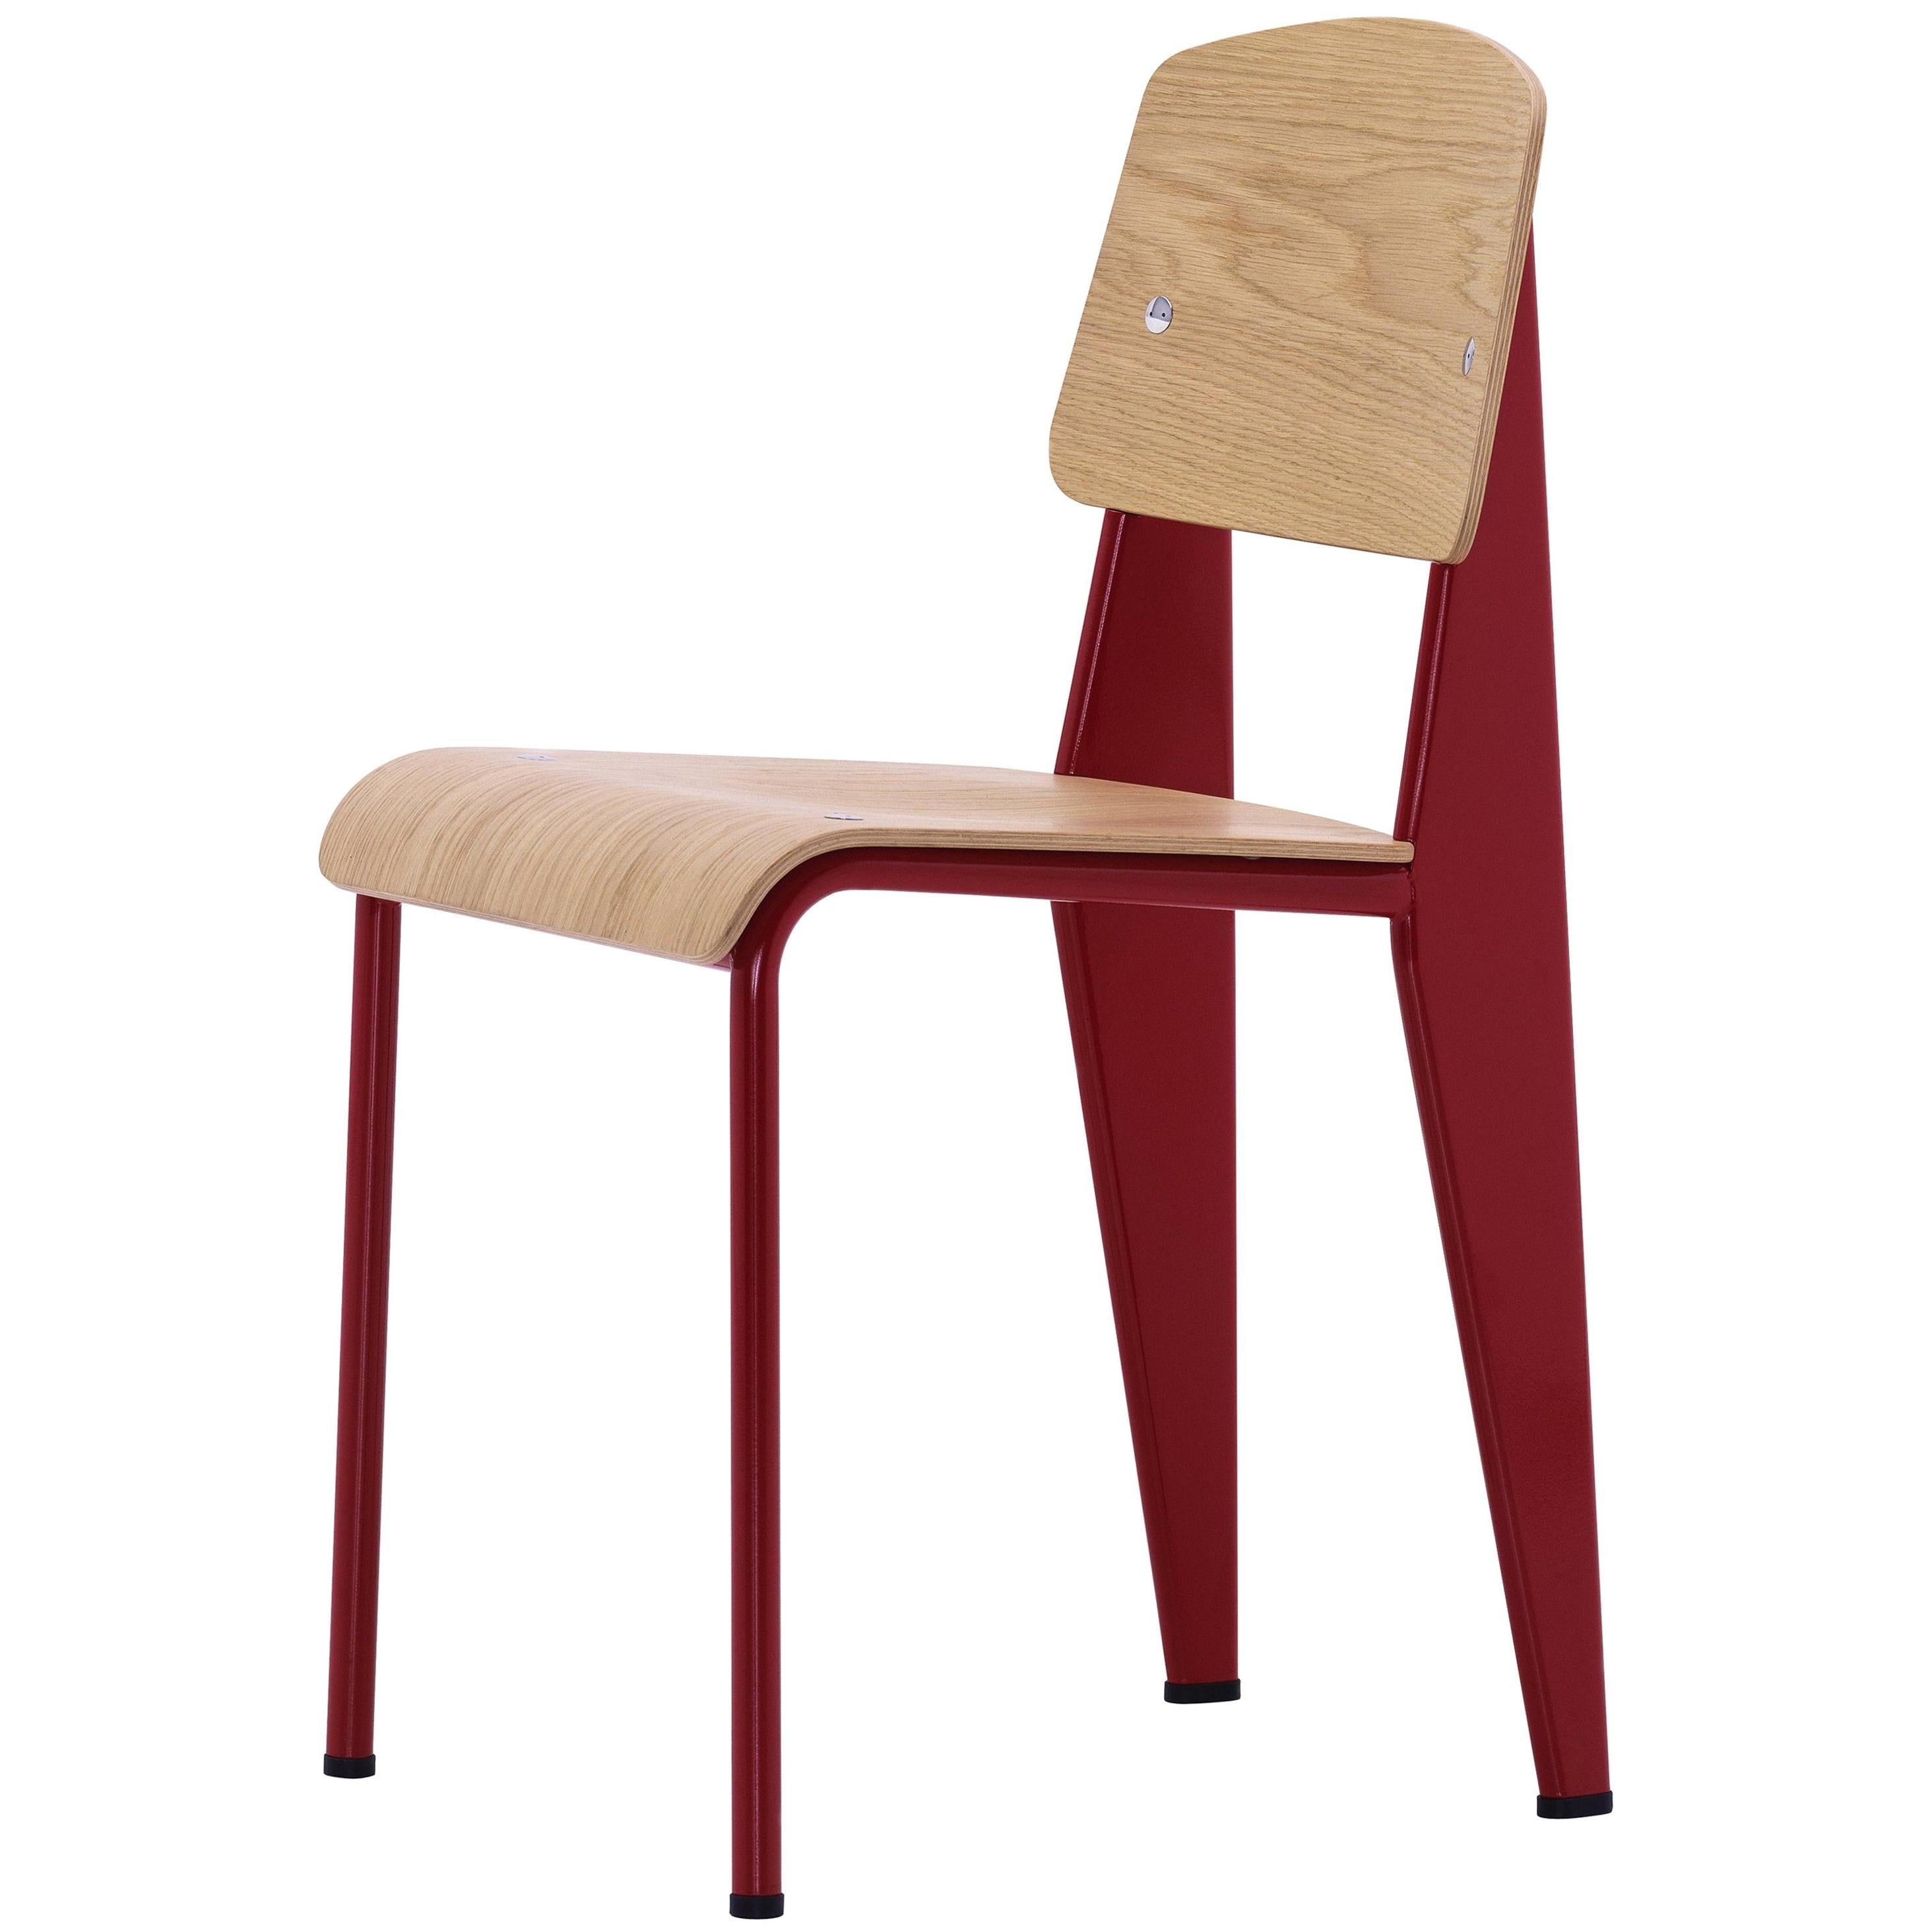 Jean Prouvé Standard Chair in Natural Oak and Japanese Red for Vitra